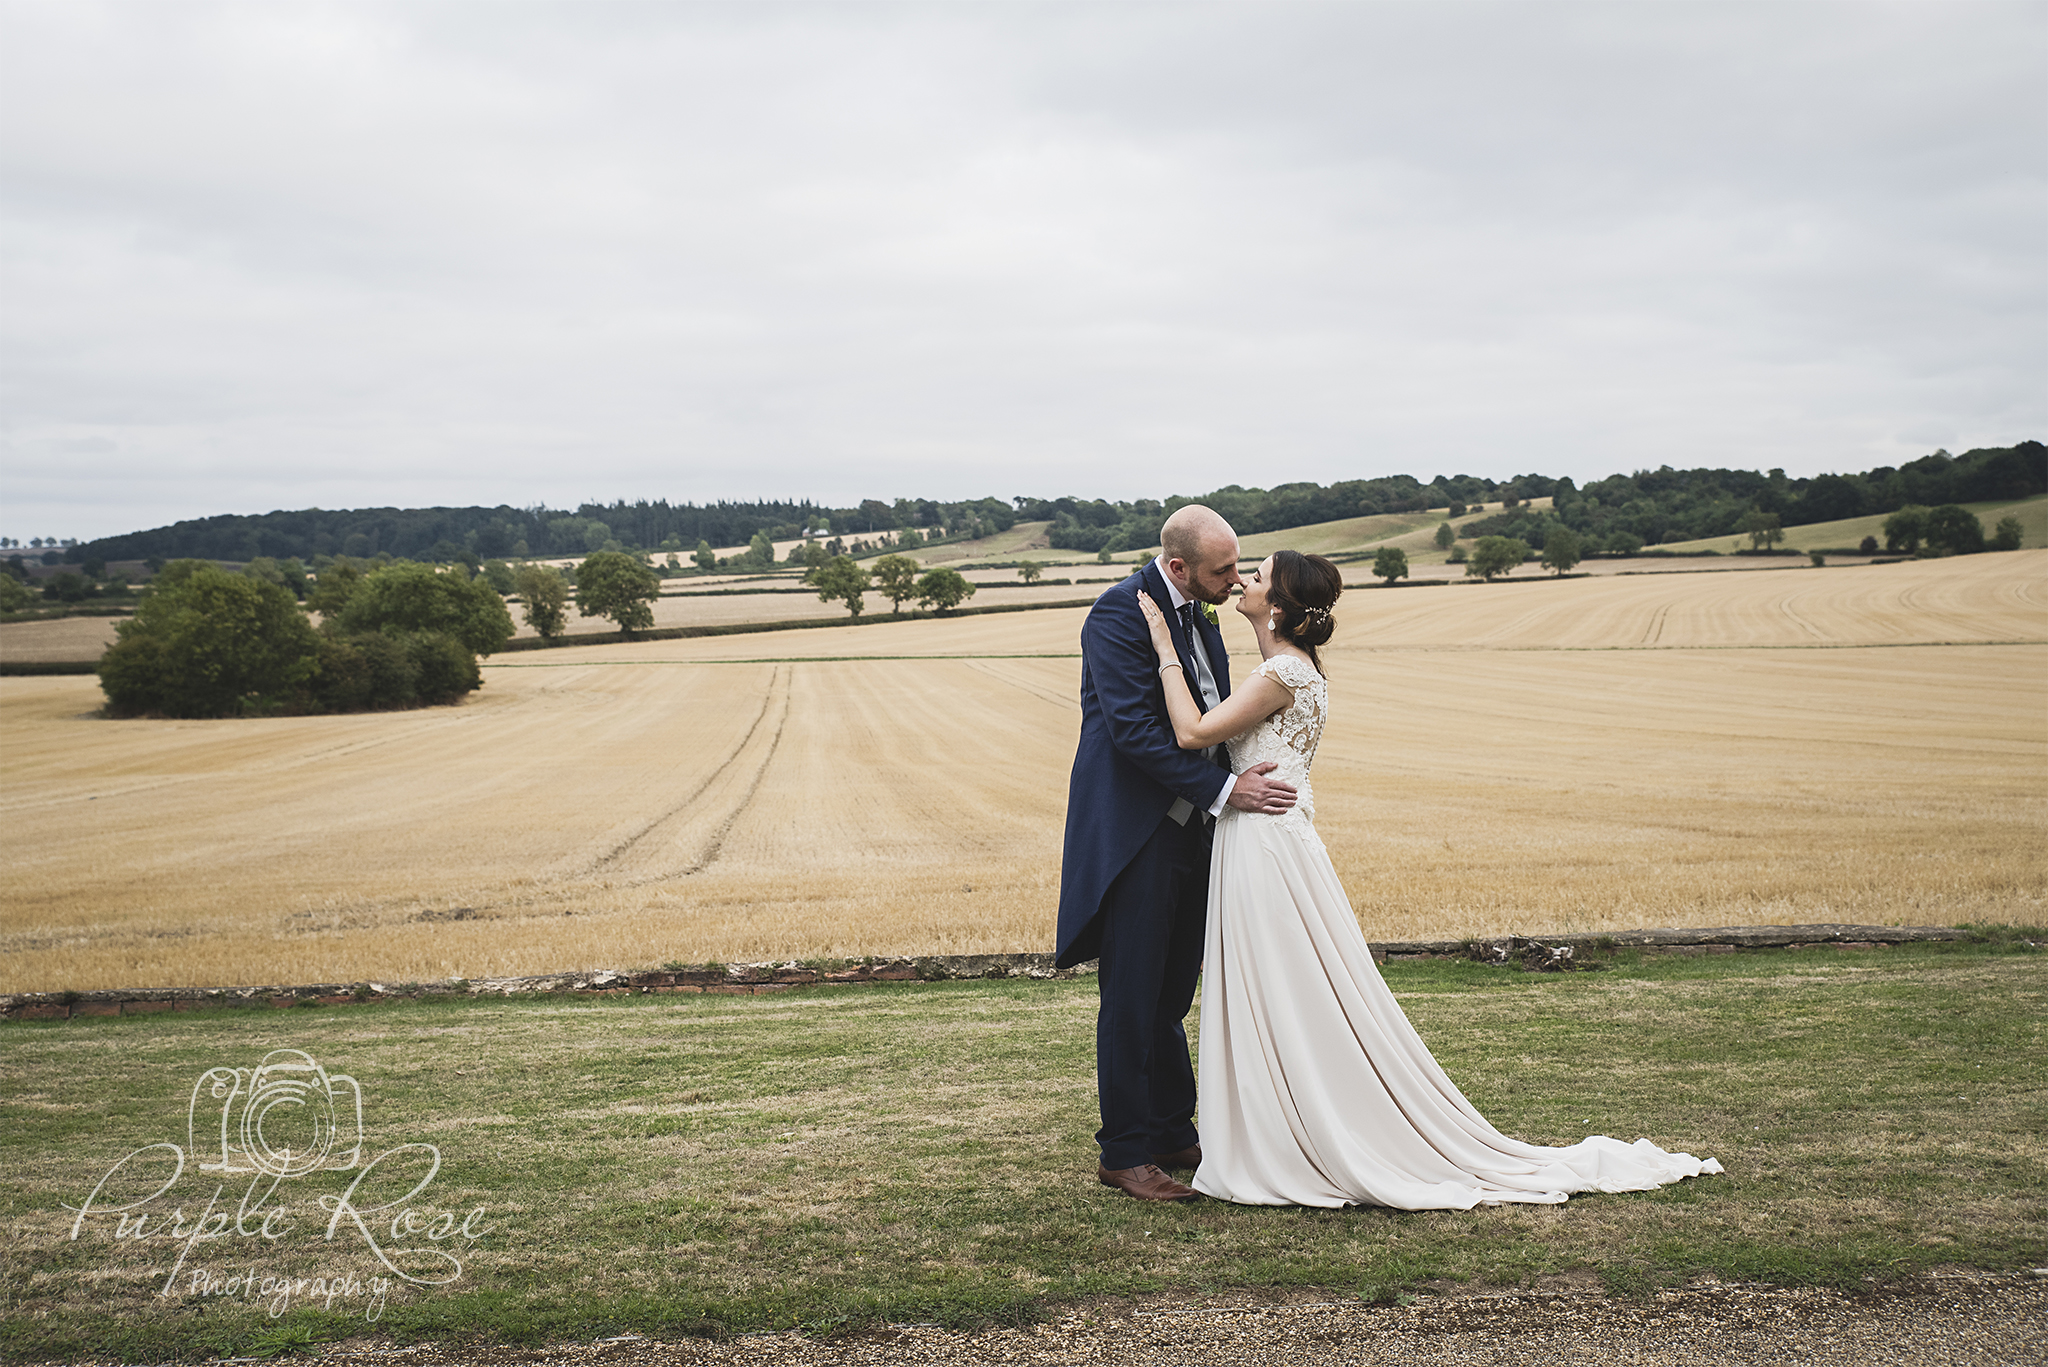 Bride and groom in front off an open field